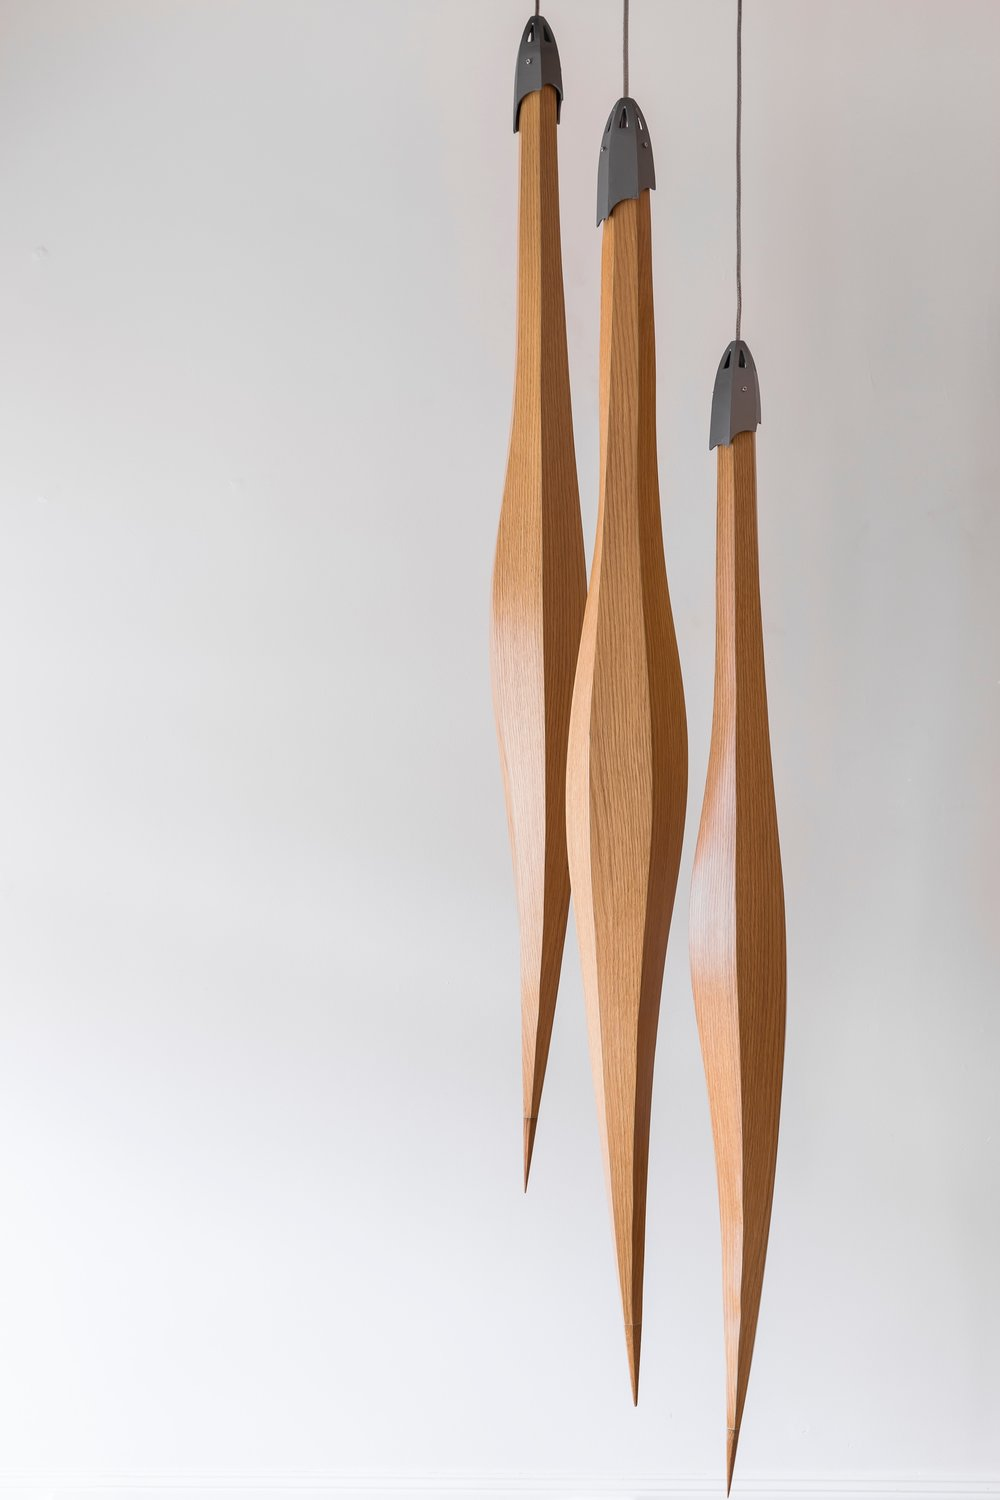 Harakeke Pods Materials: Macrocarpa / Oak / Custom - aluminium castings Size - H 1800mm                                                Light Source: High CRI LED strip Please enquire for price Handcrafted in New Zealand.